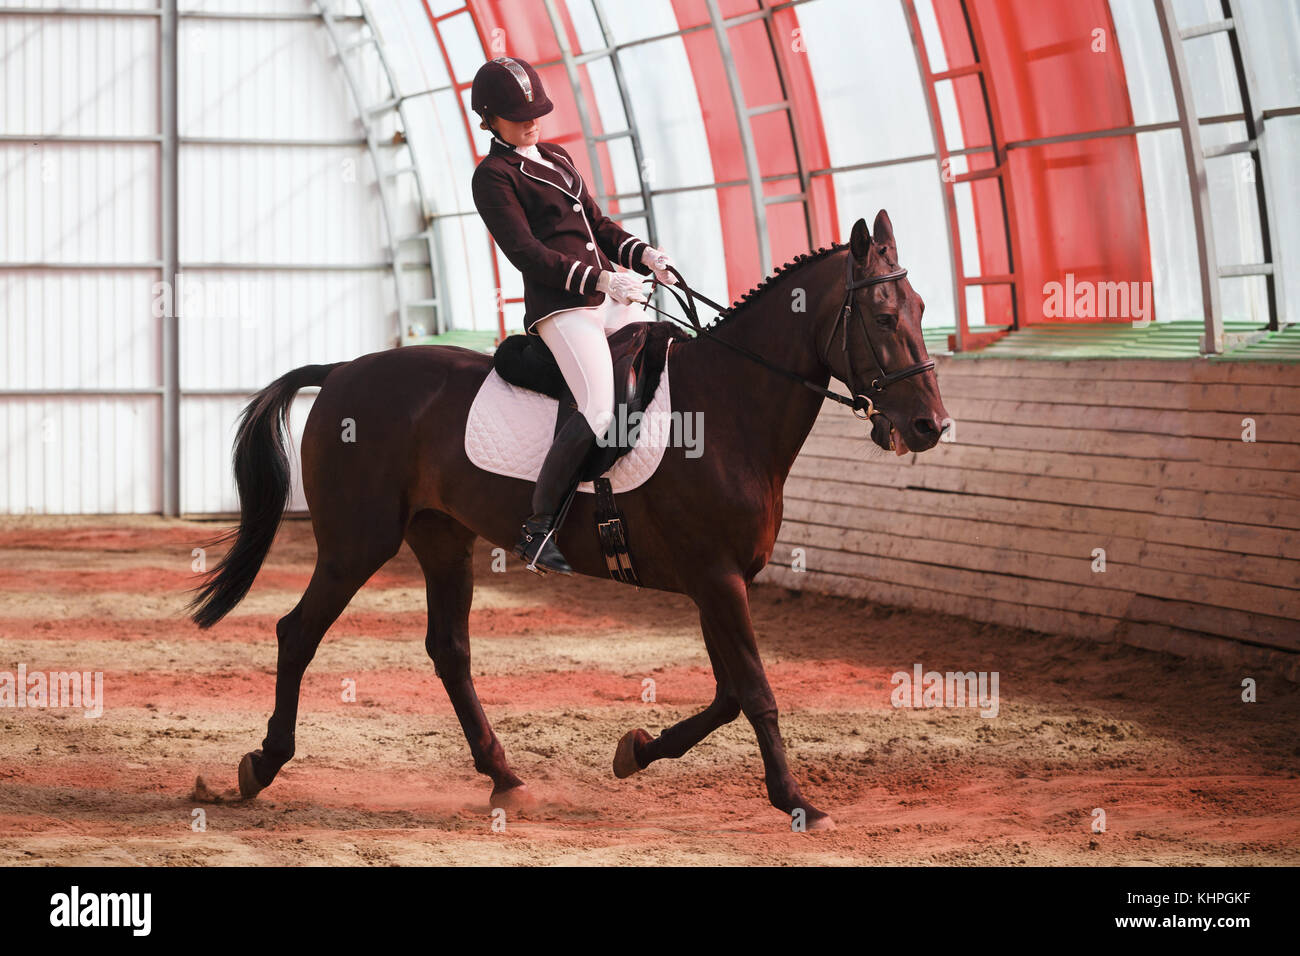 A sweet girl jockey rides a horse in a covered arena. Training of the Spanish lynx. A pedigree horse for equestrian - Stock Image